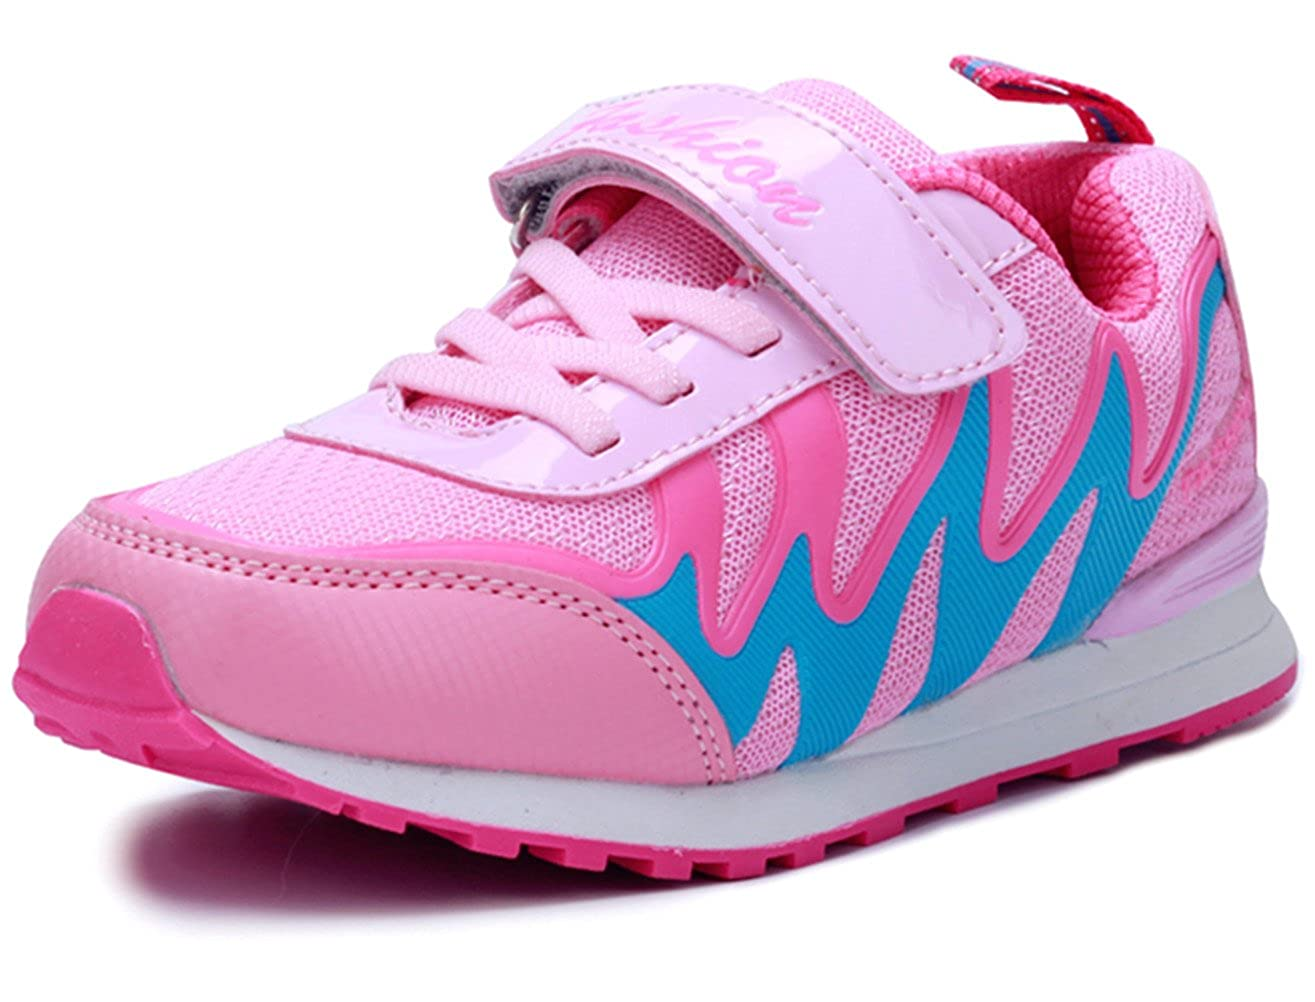 DADAWEN Boys /& Girls Lightweight Sneakers Breathable Athletic Running Shoes 10073ZW Toddler//Little Kid//Big Kid